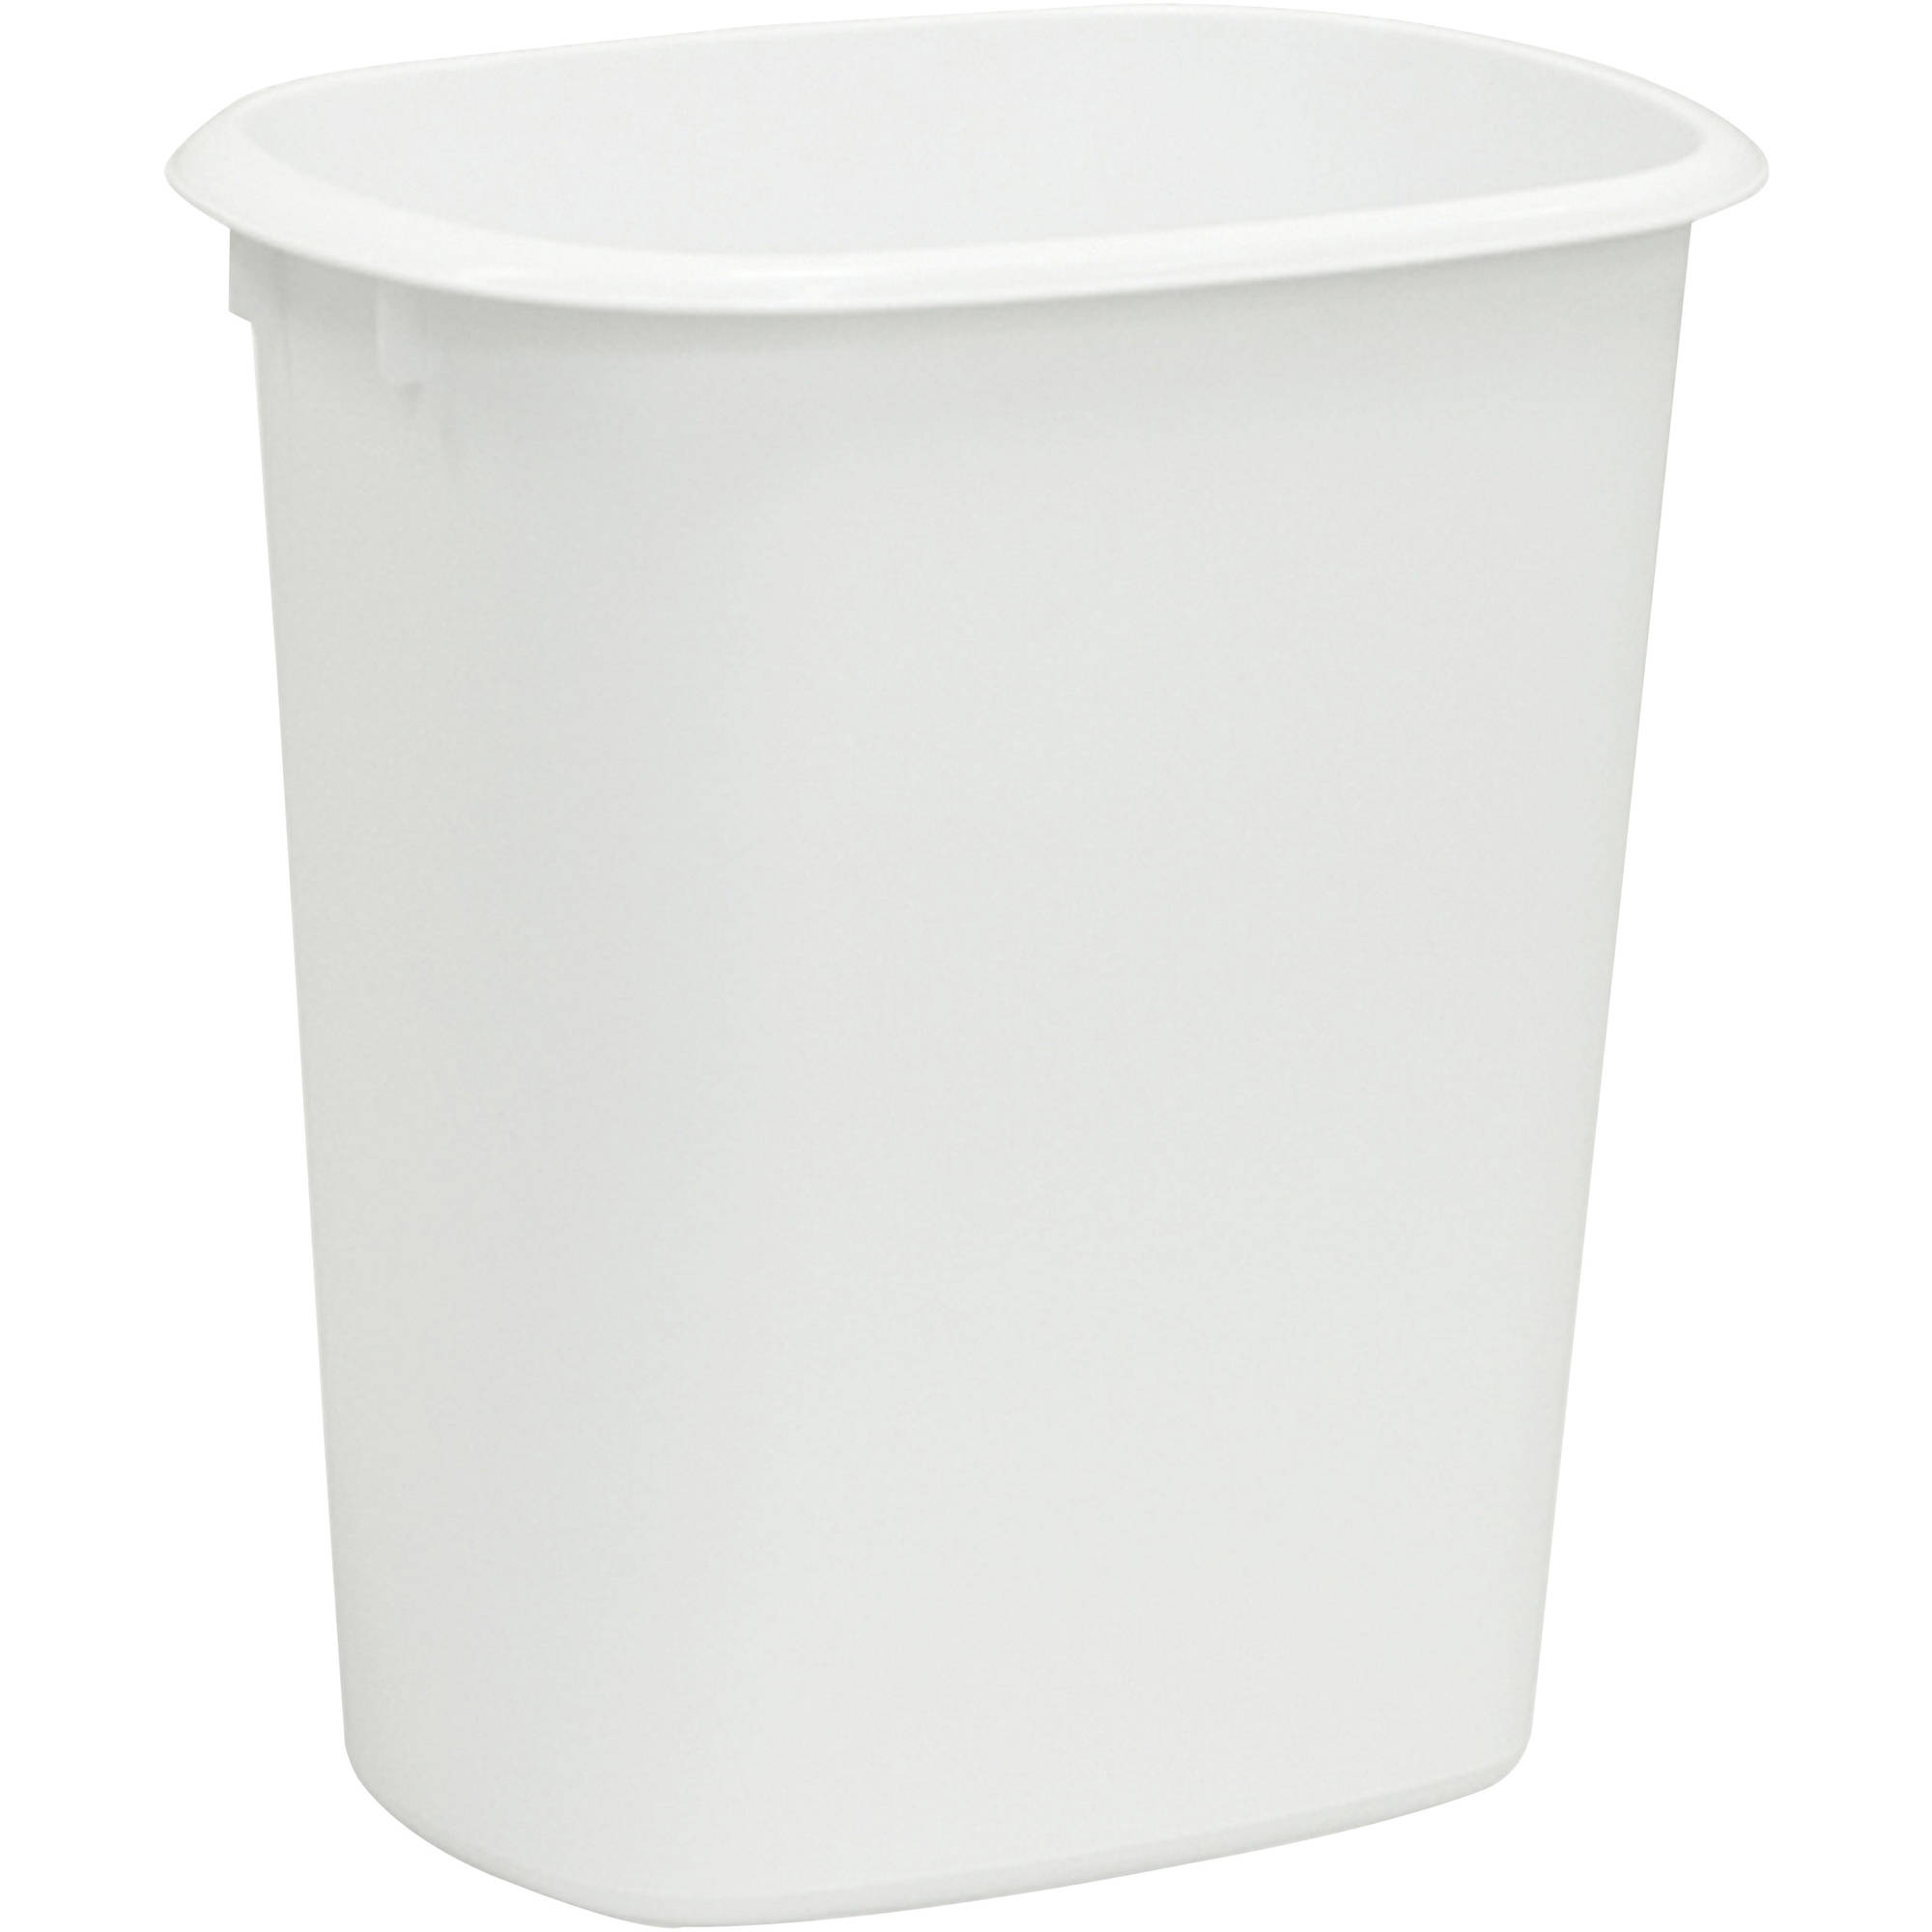 Bathroom Trash Can With Lid Walmart Full Size Of Small Trash Can With Lid Walmart Umbra Small